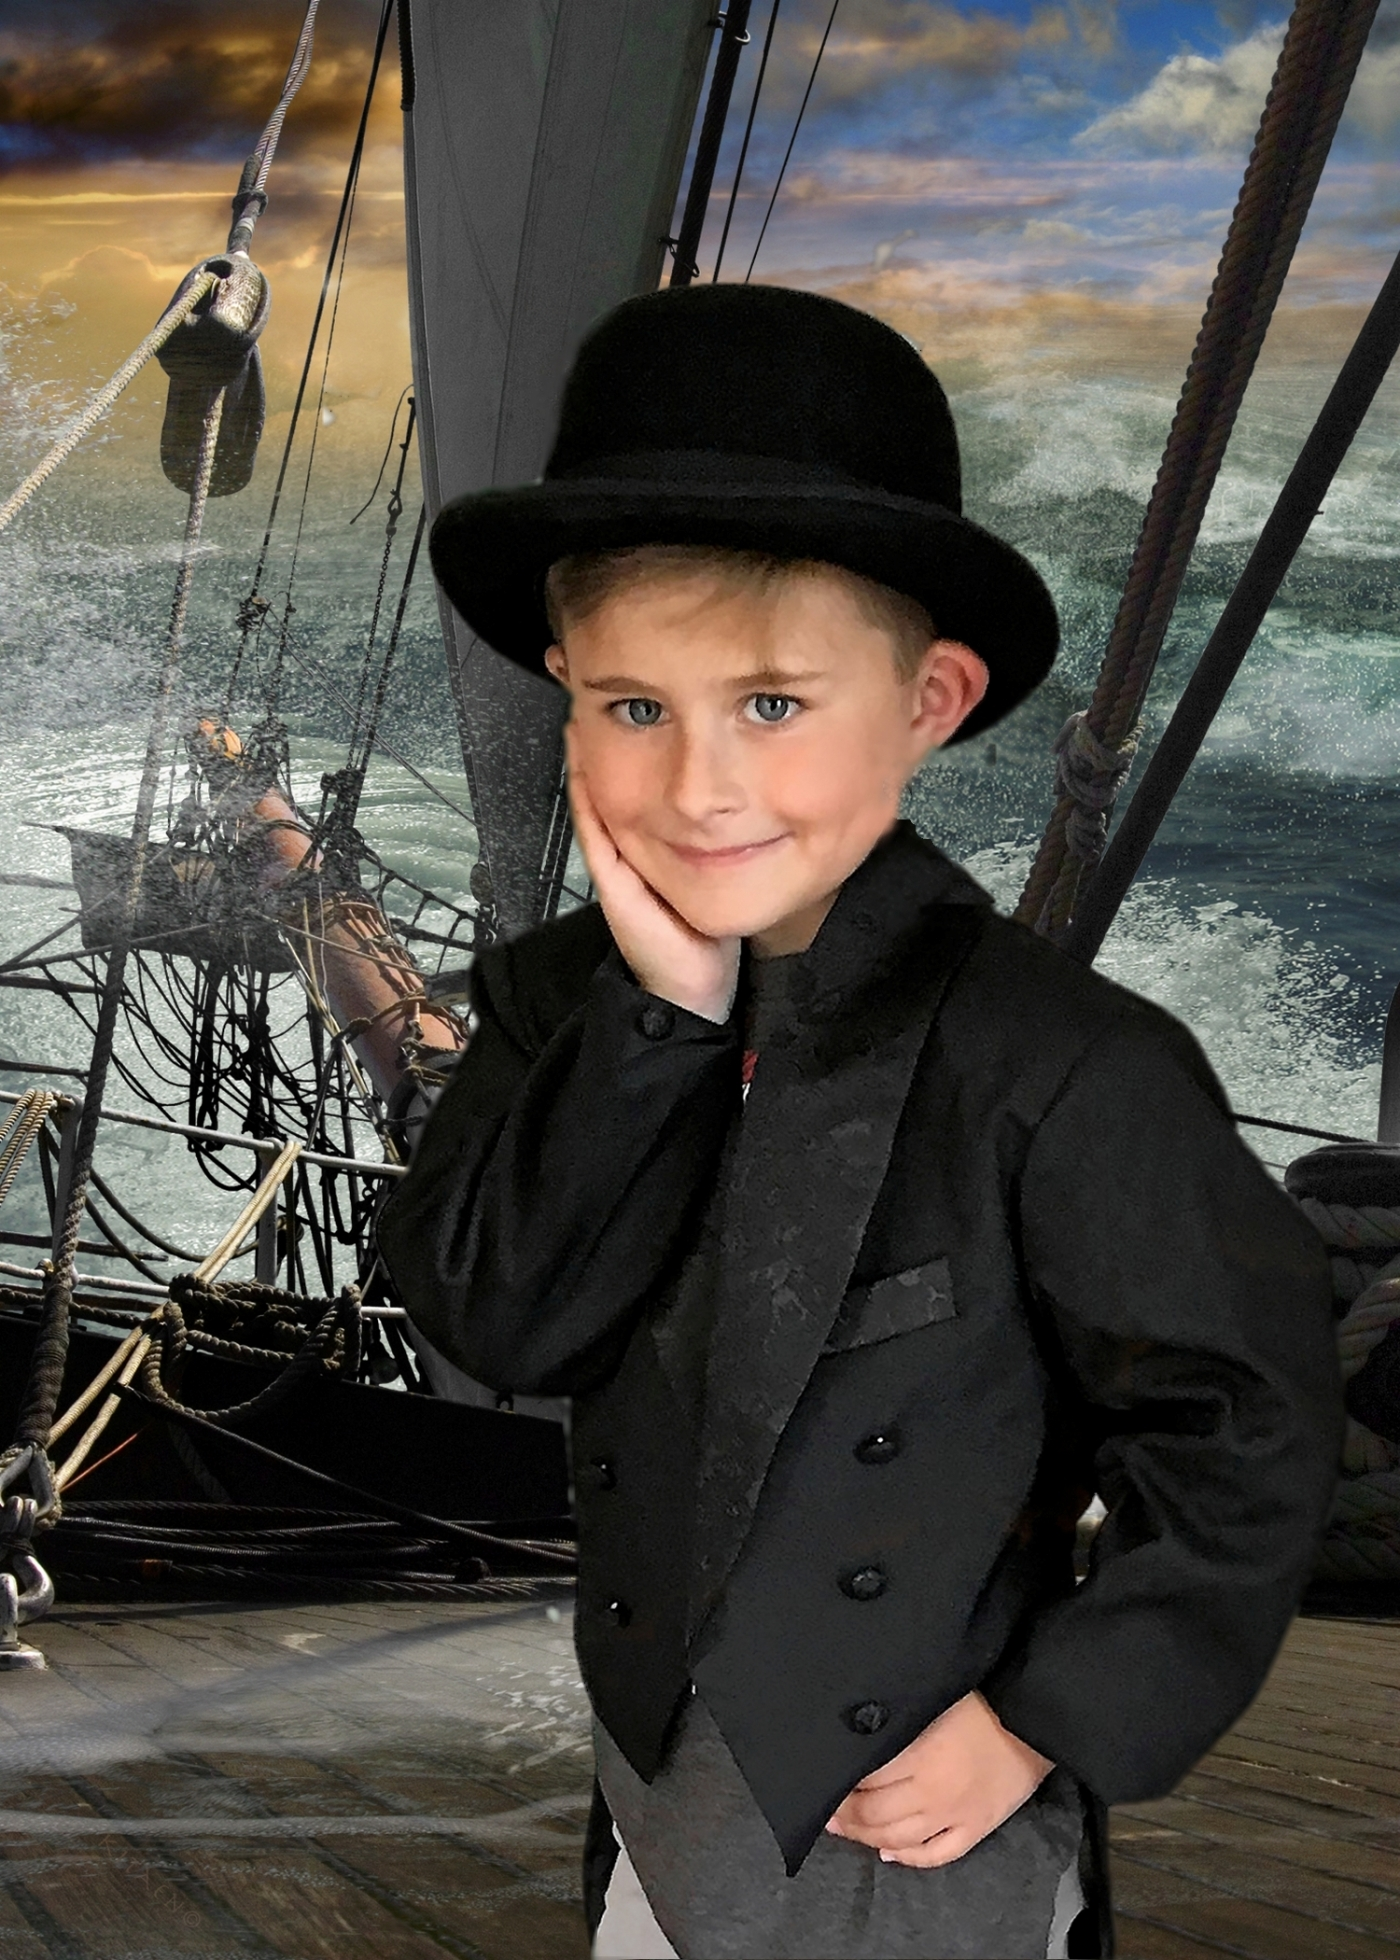 Lucas on a Pirate Ship in a Tuxedo